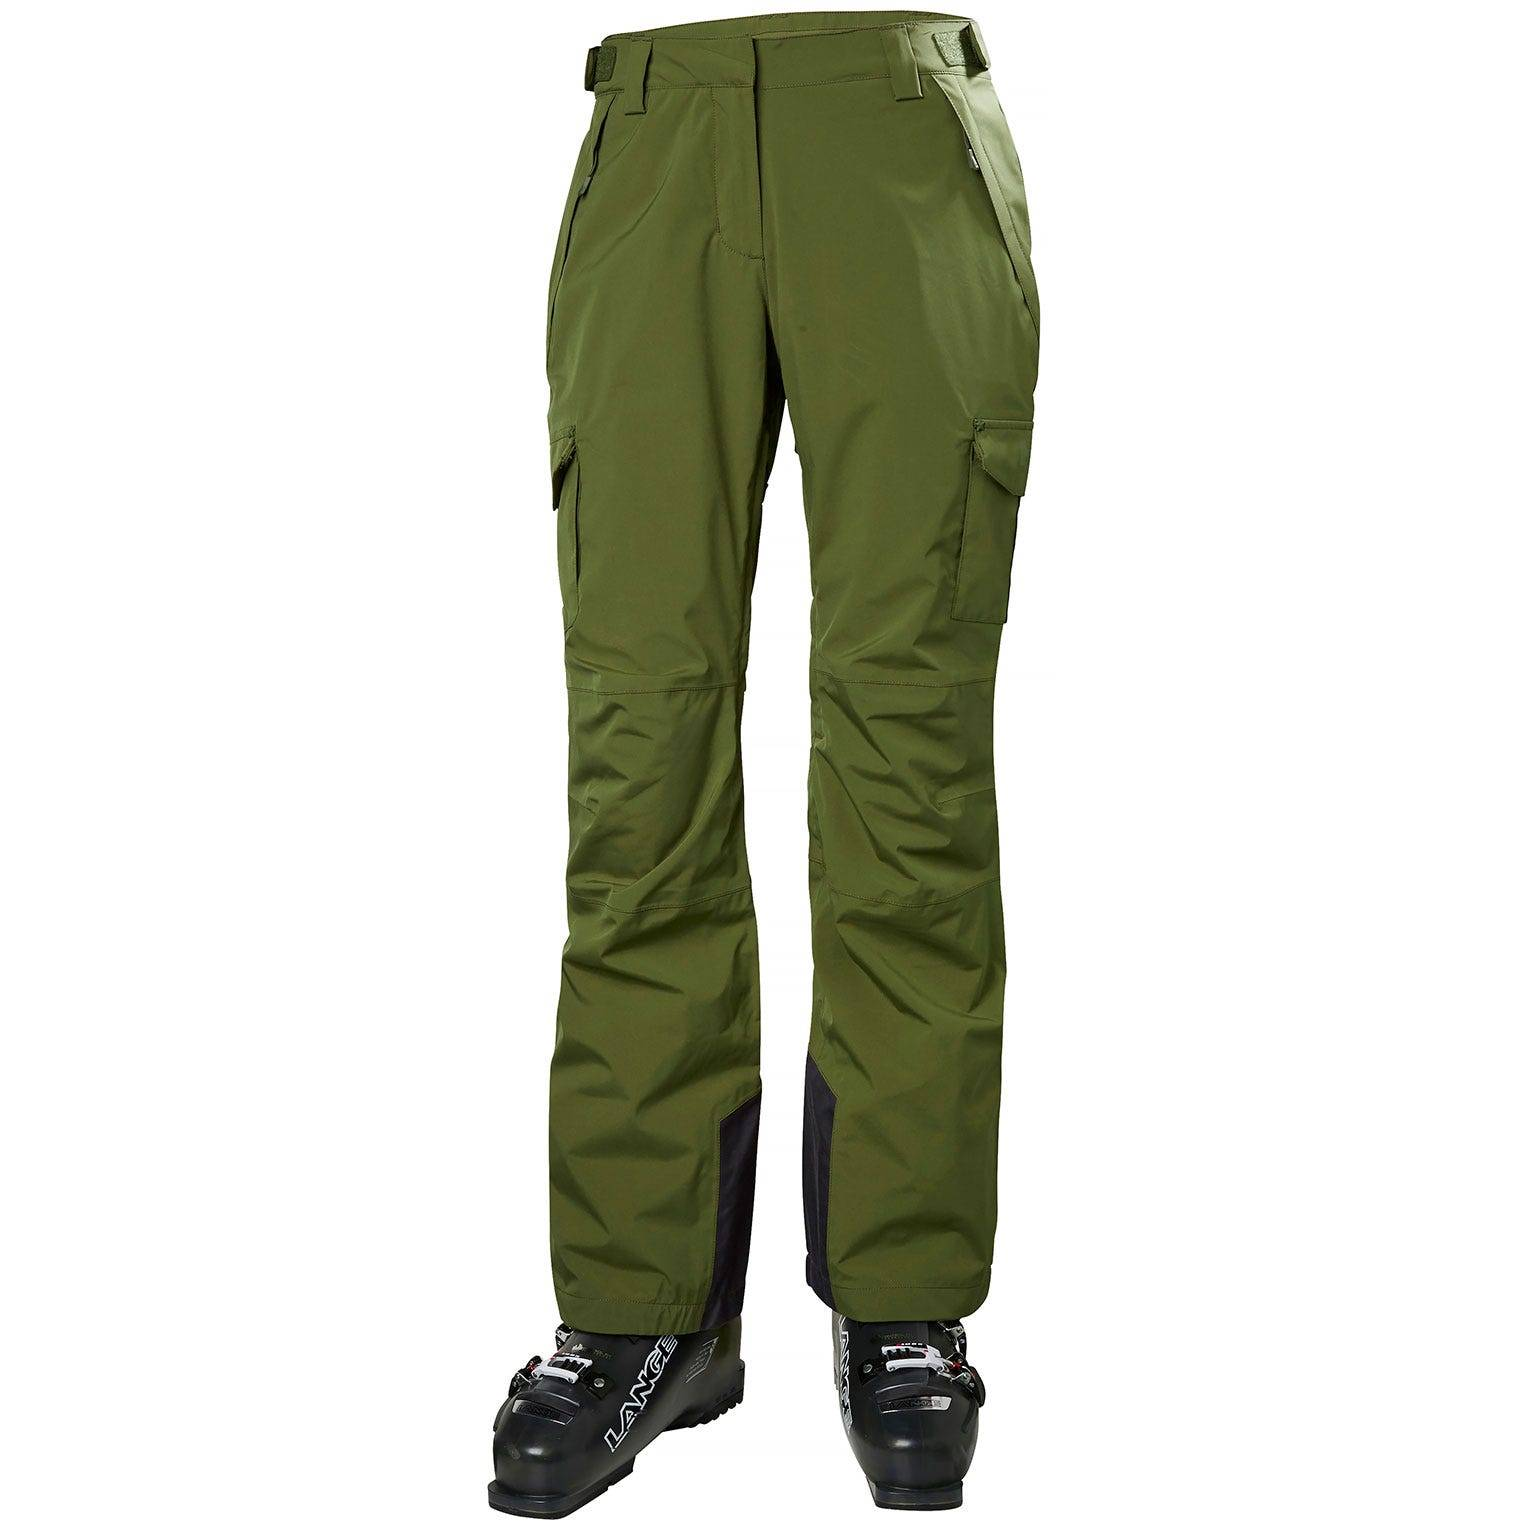 Helly Hansen W Switch Cargo 2.0 Pant Womens Ski Green L